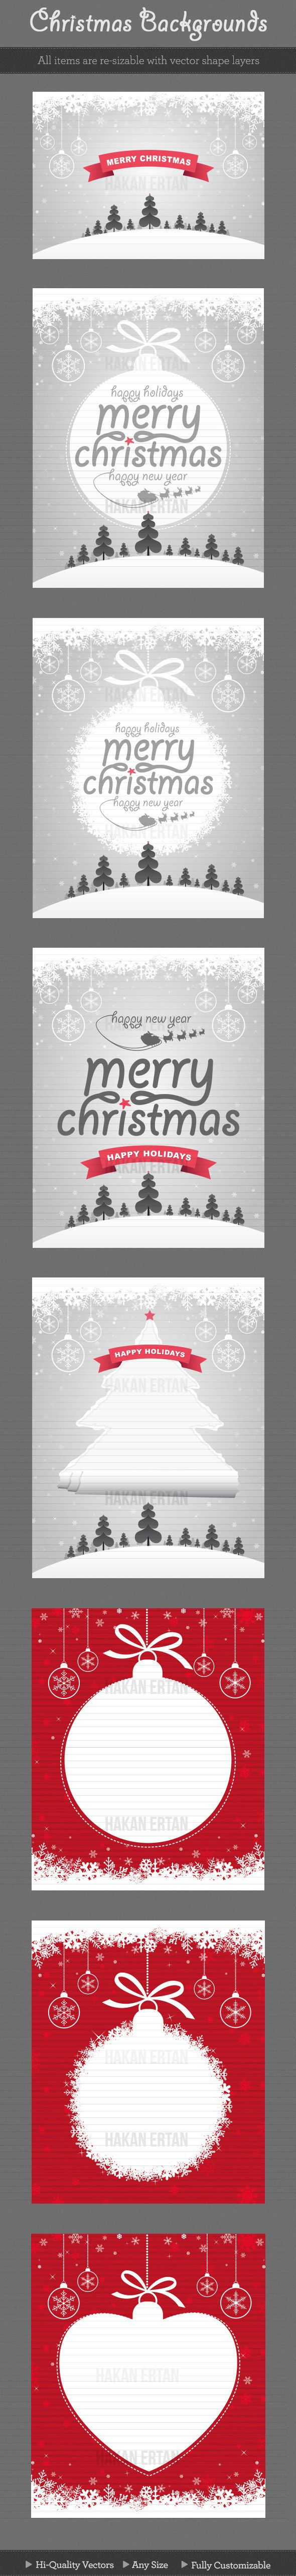 Christmas Backgrounds by hakan ertan, via Behance